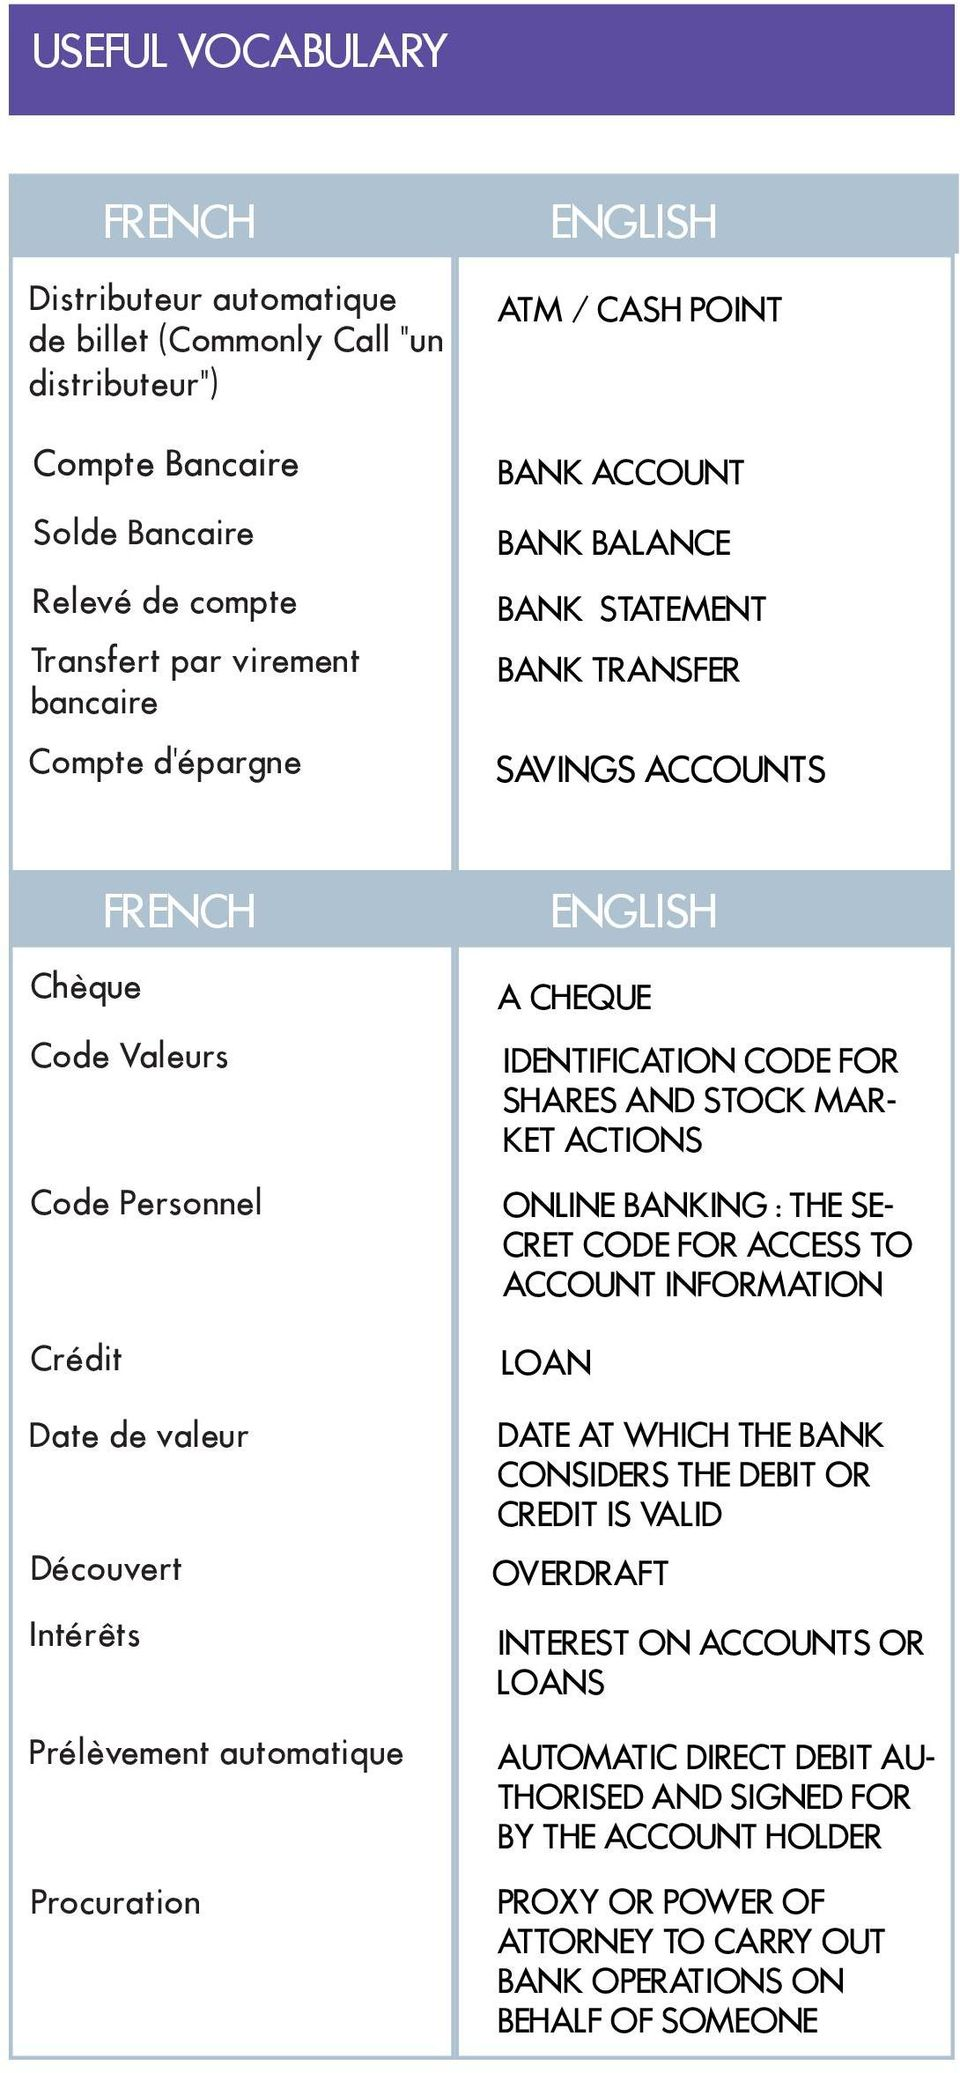 Prélèvement automatique Procuration ENGLISH A CHEQUE IDENTIFICATION CODE FOR SHARES AND STOCK MAR- KET ACTIONS ONLINE BANKING : THE SE- CRET CODE FOR ACCESS TO ACCOUNT INFORMATION LOAN DATE AT WHICH